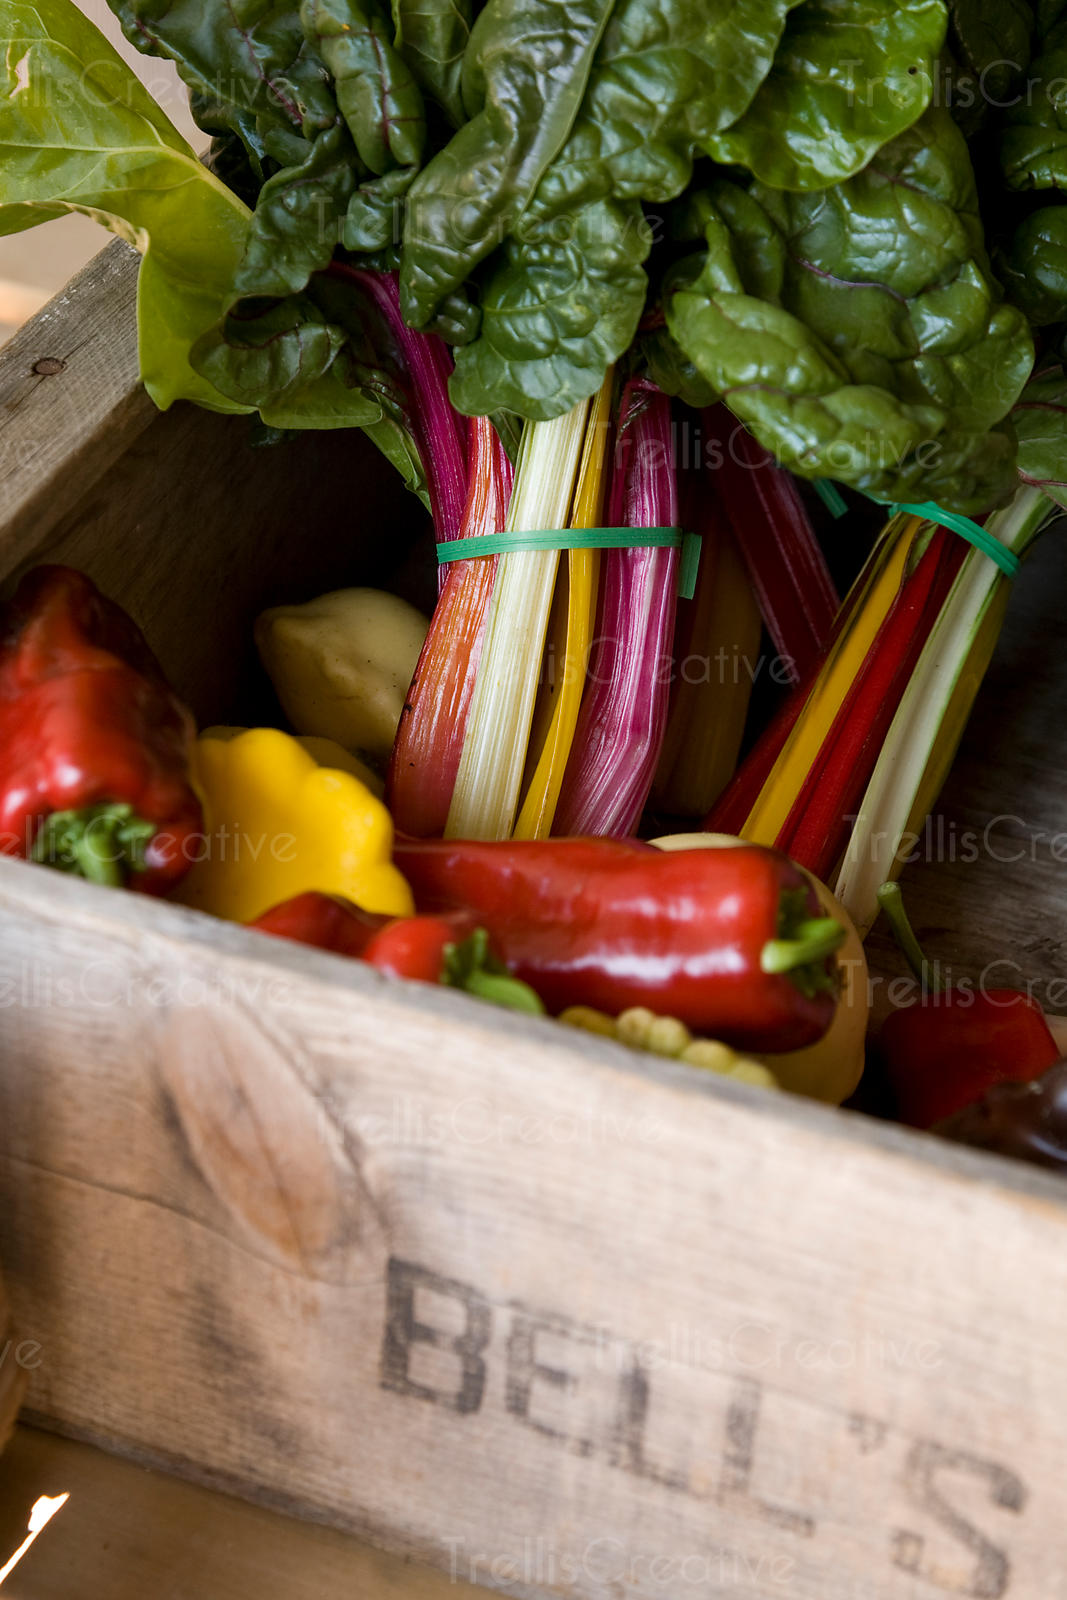 Colorful swiss chard and bell peppers in a wooden crate